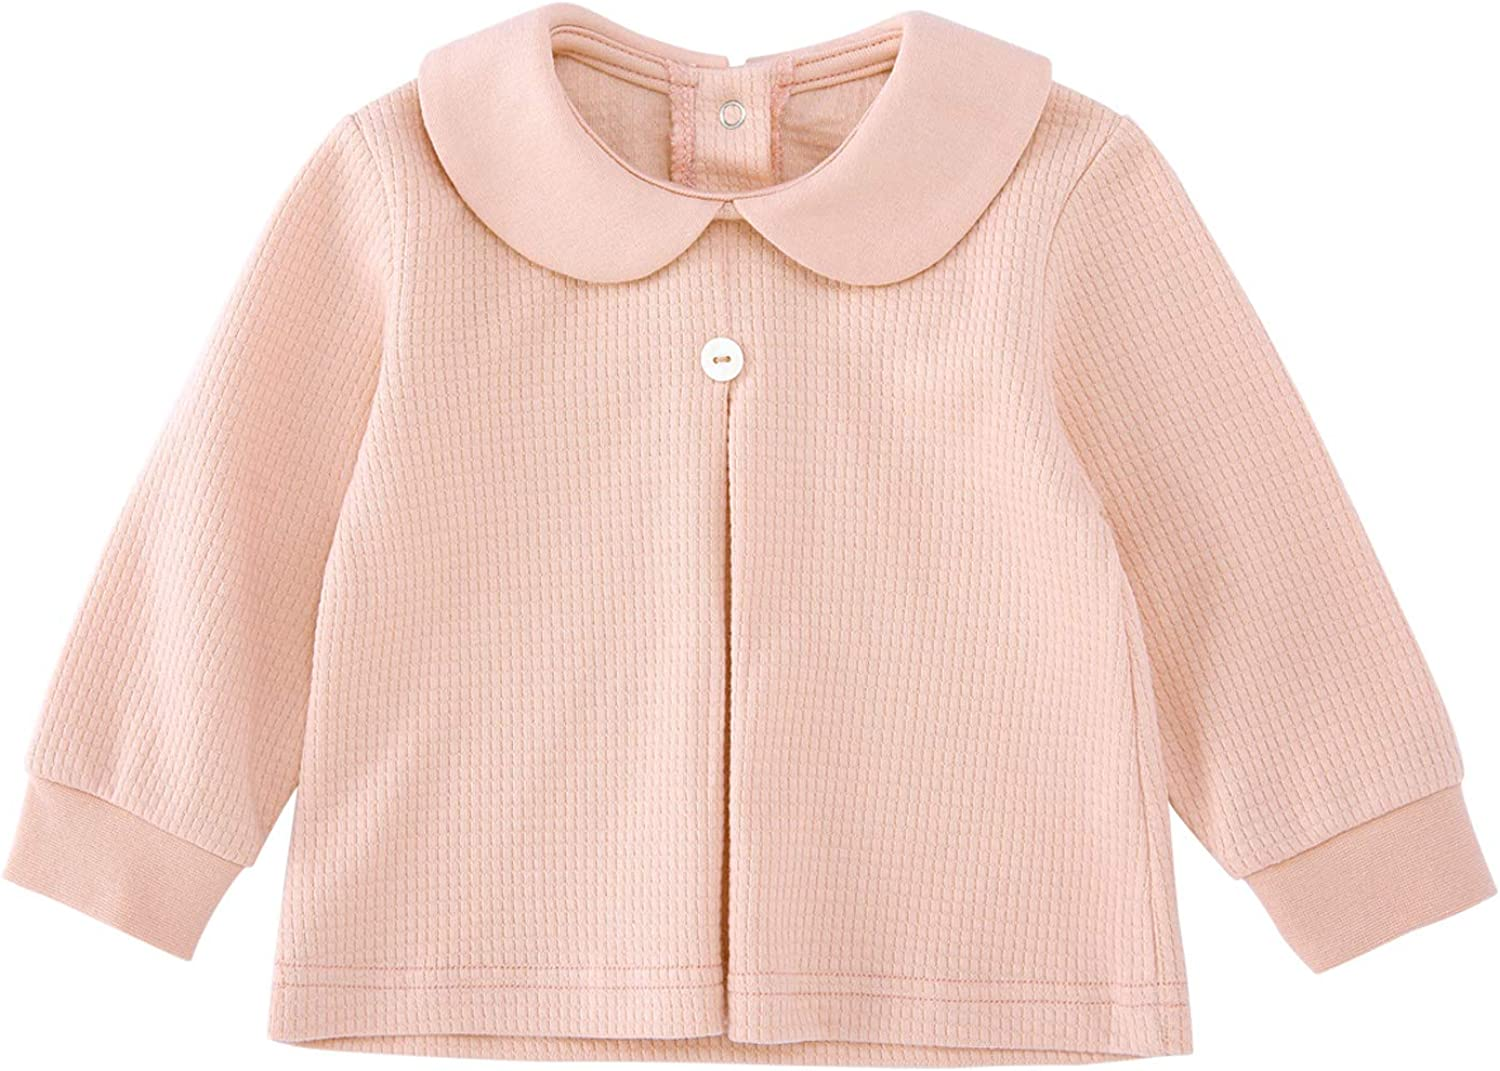 pureborn Baby /&Toddler Girls Cotton Long Sleeve Shirts Blouse Tops